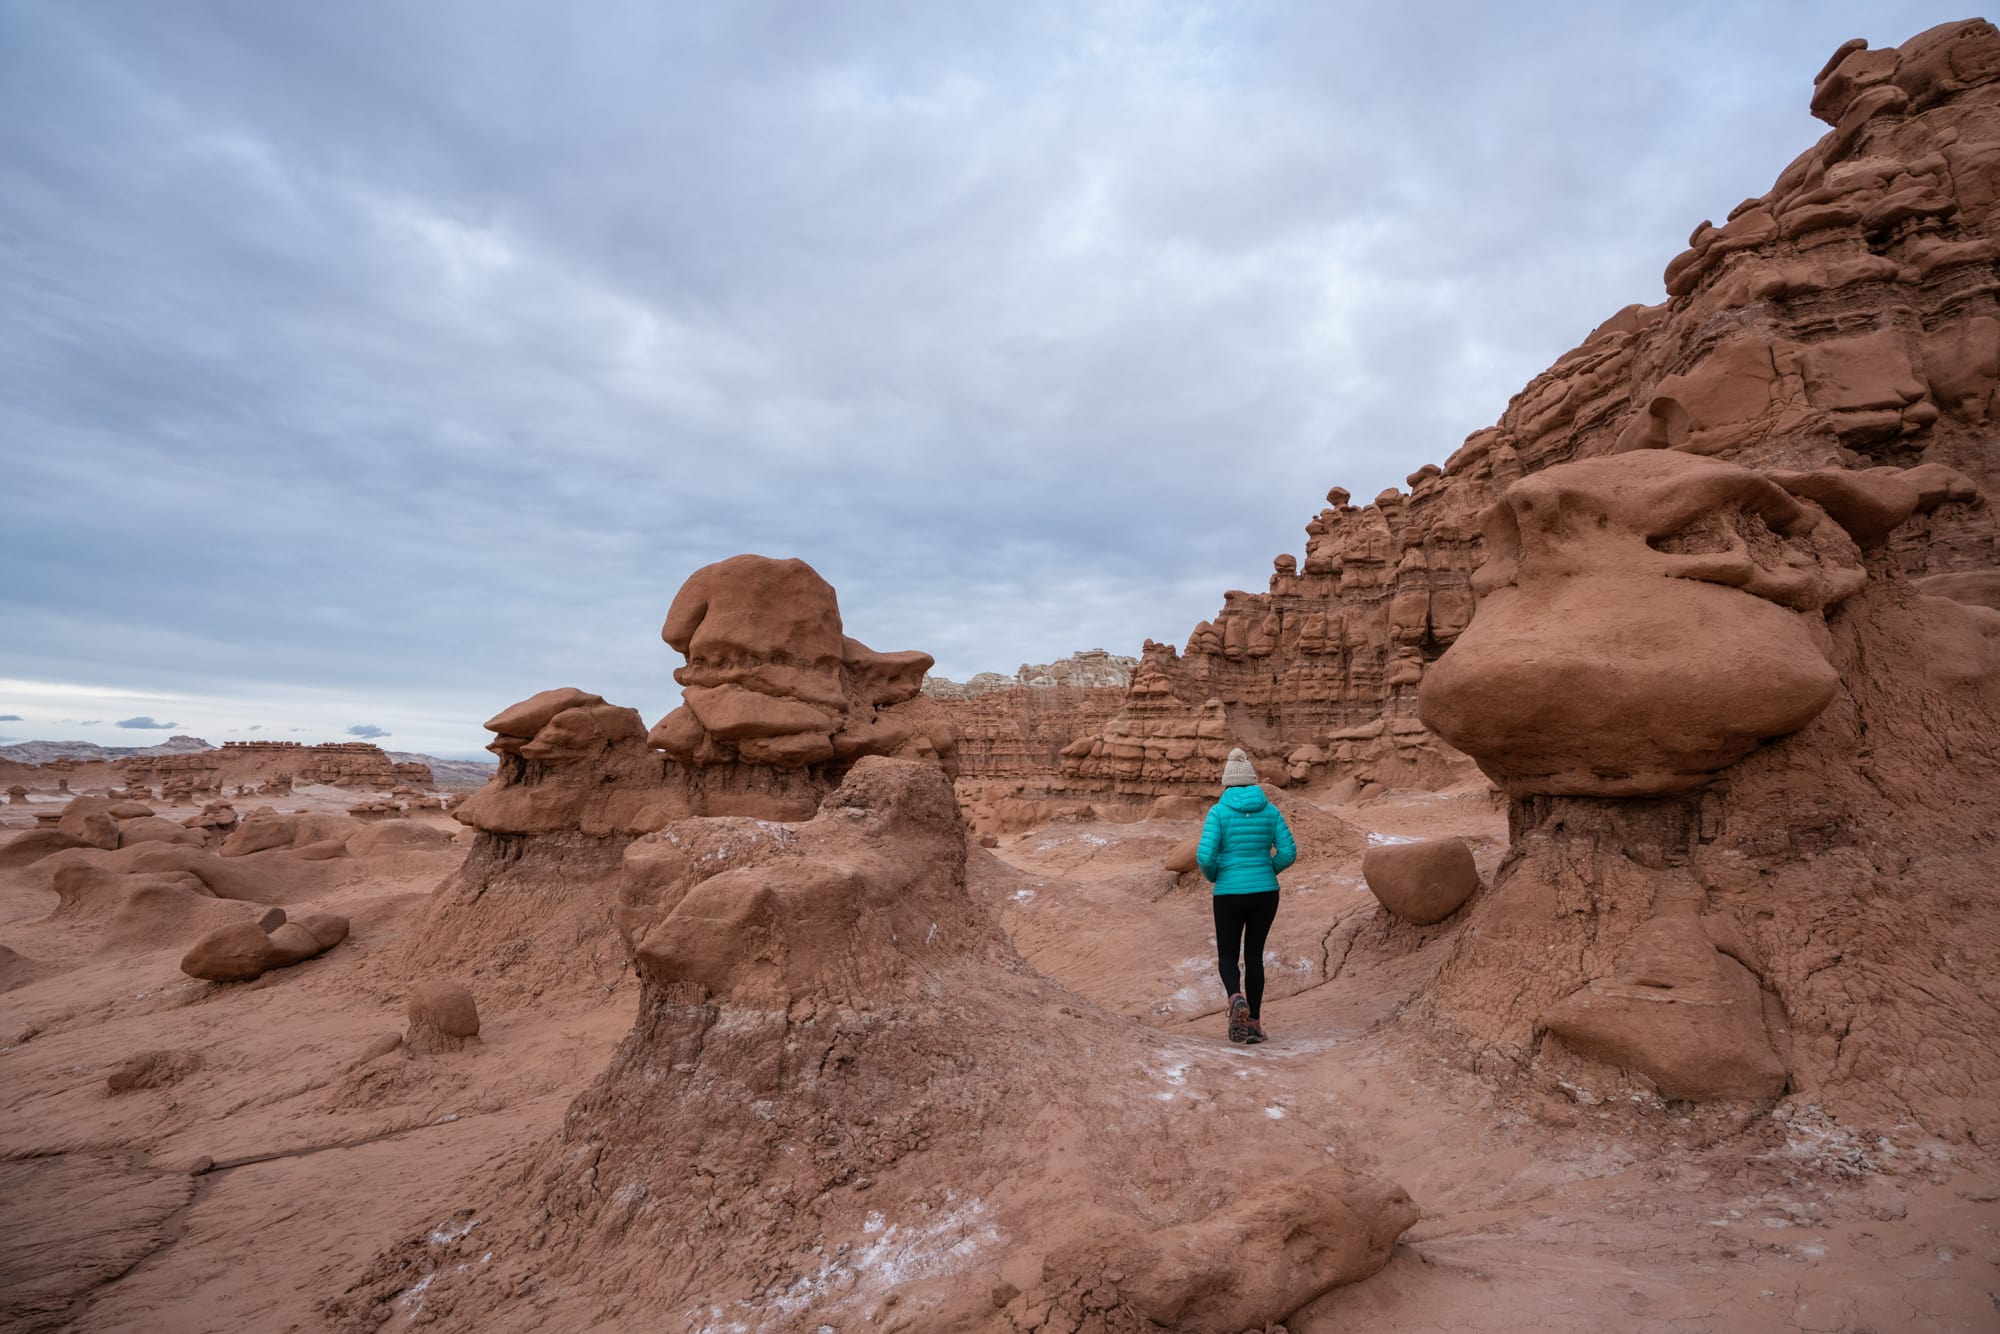 A complete guide to the best Utah state parks for hiking, camping and site seeing. From slot canyons to viewpoints we share our favorite hikes in each.